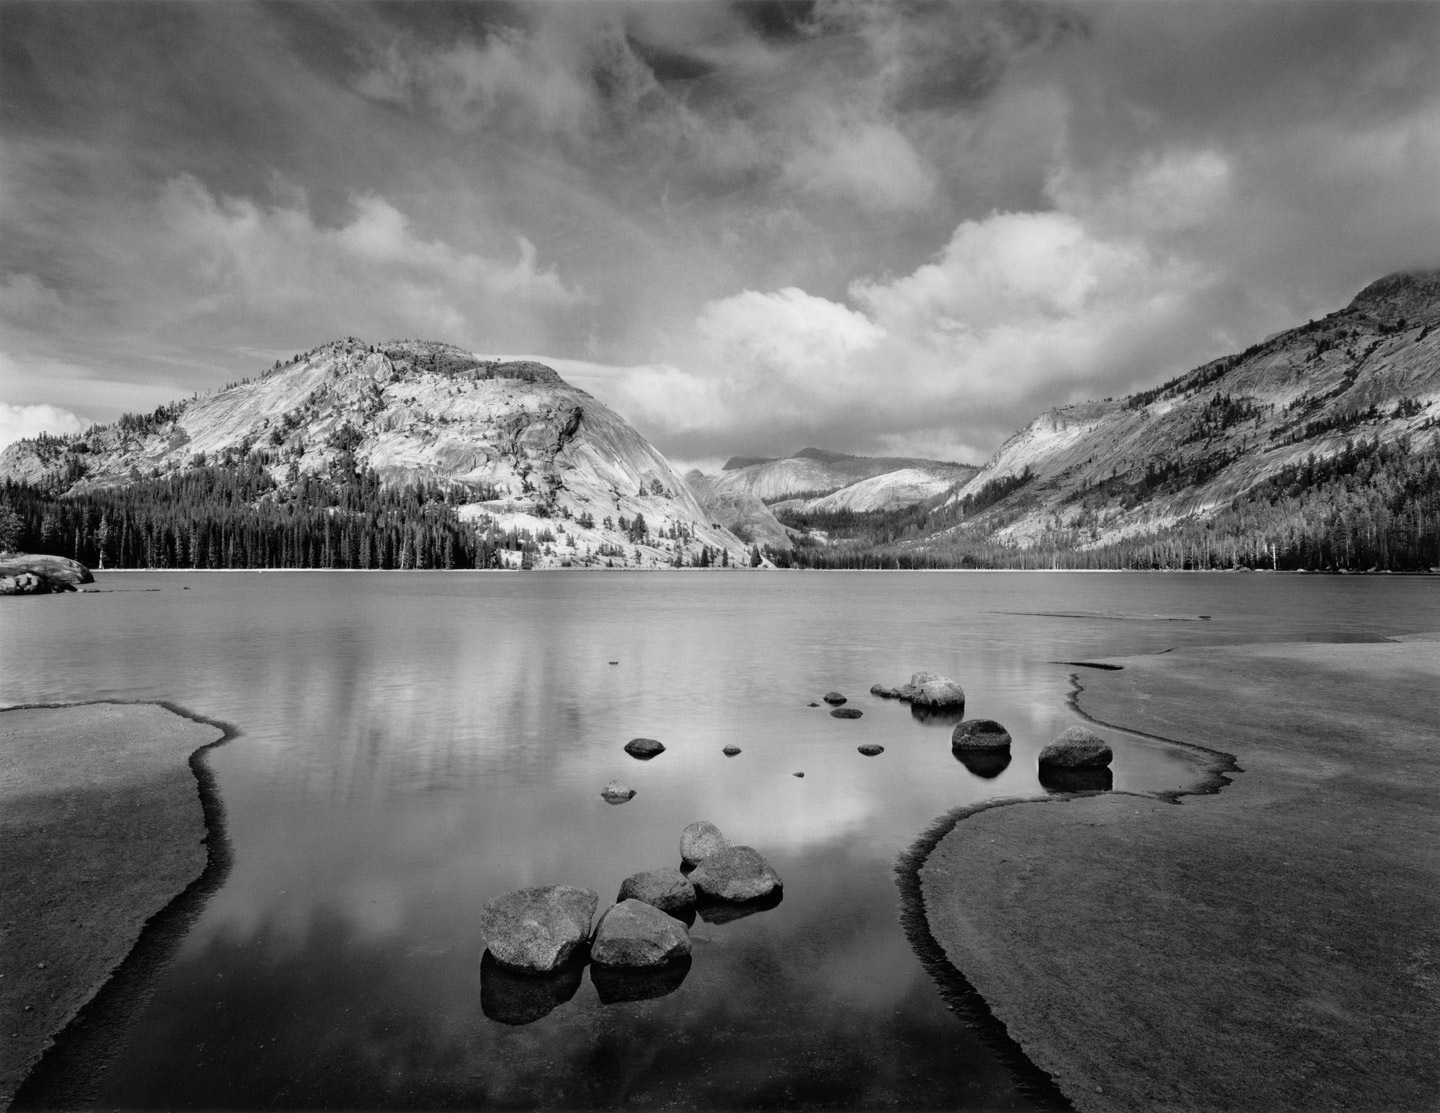 essay on ansel adams photography Ansel adams essays: over 180,000 ansel adams essays, ansel adams term papers, ansel adams research paper, book reports 184 990 essays, term and research papers.